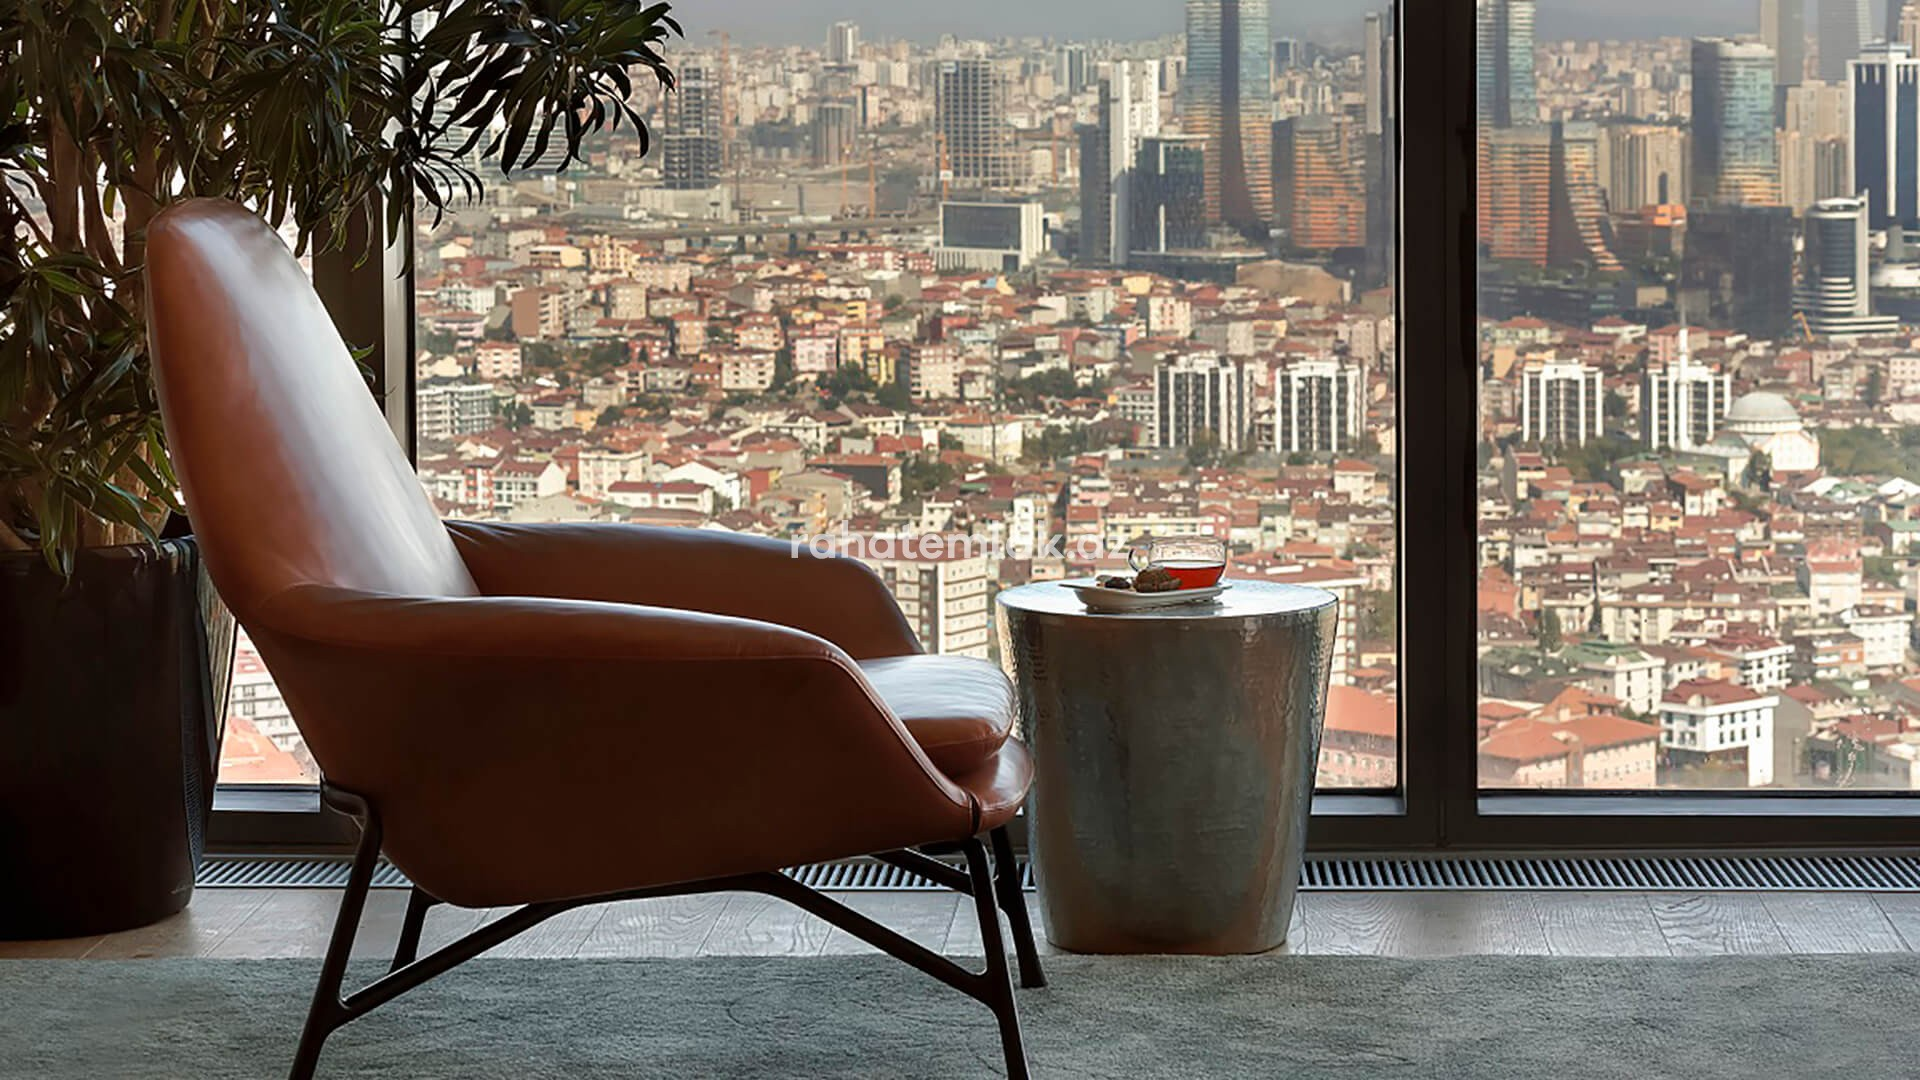 A new silhouette of Istanbul - stunning islands, sea and city views